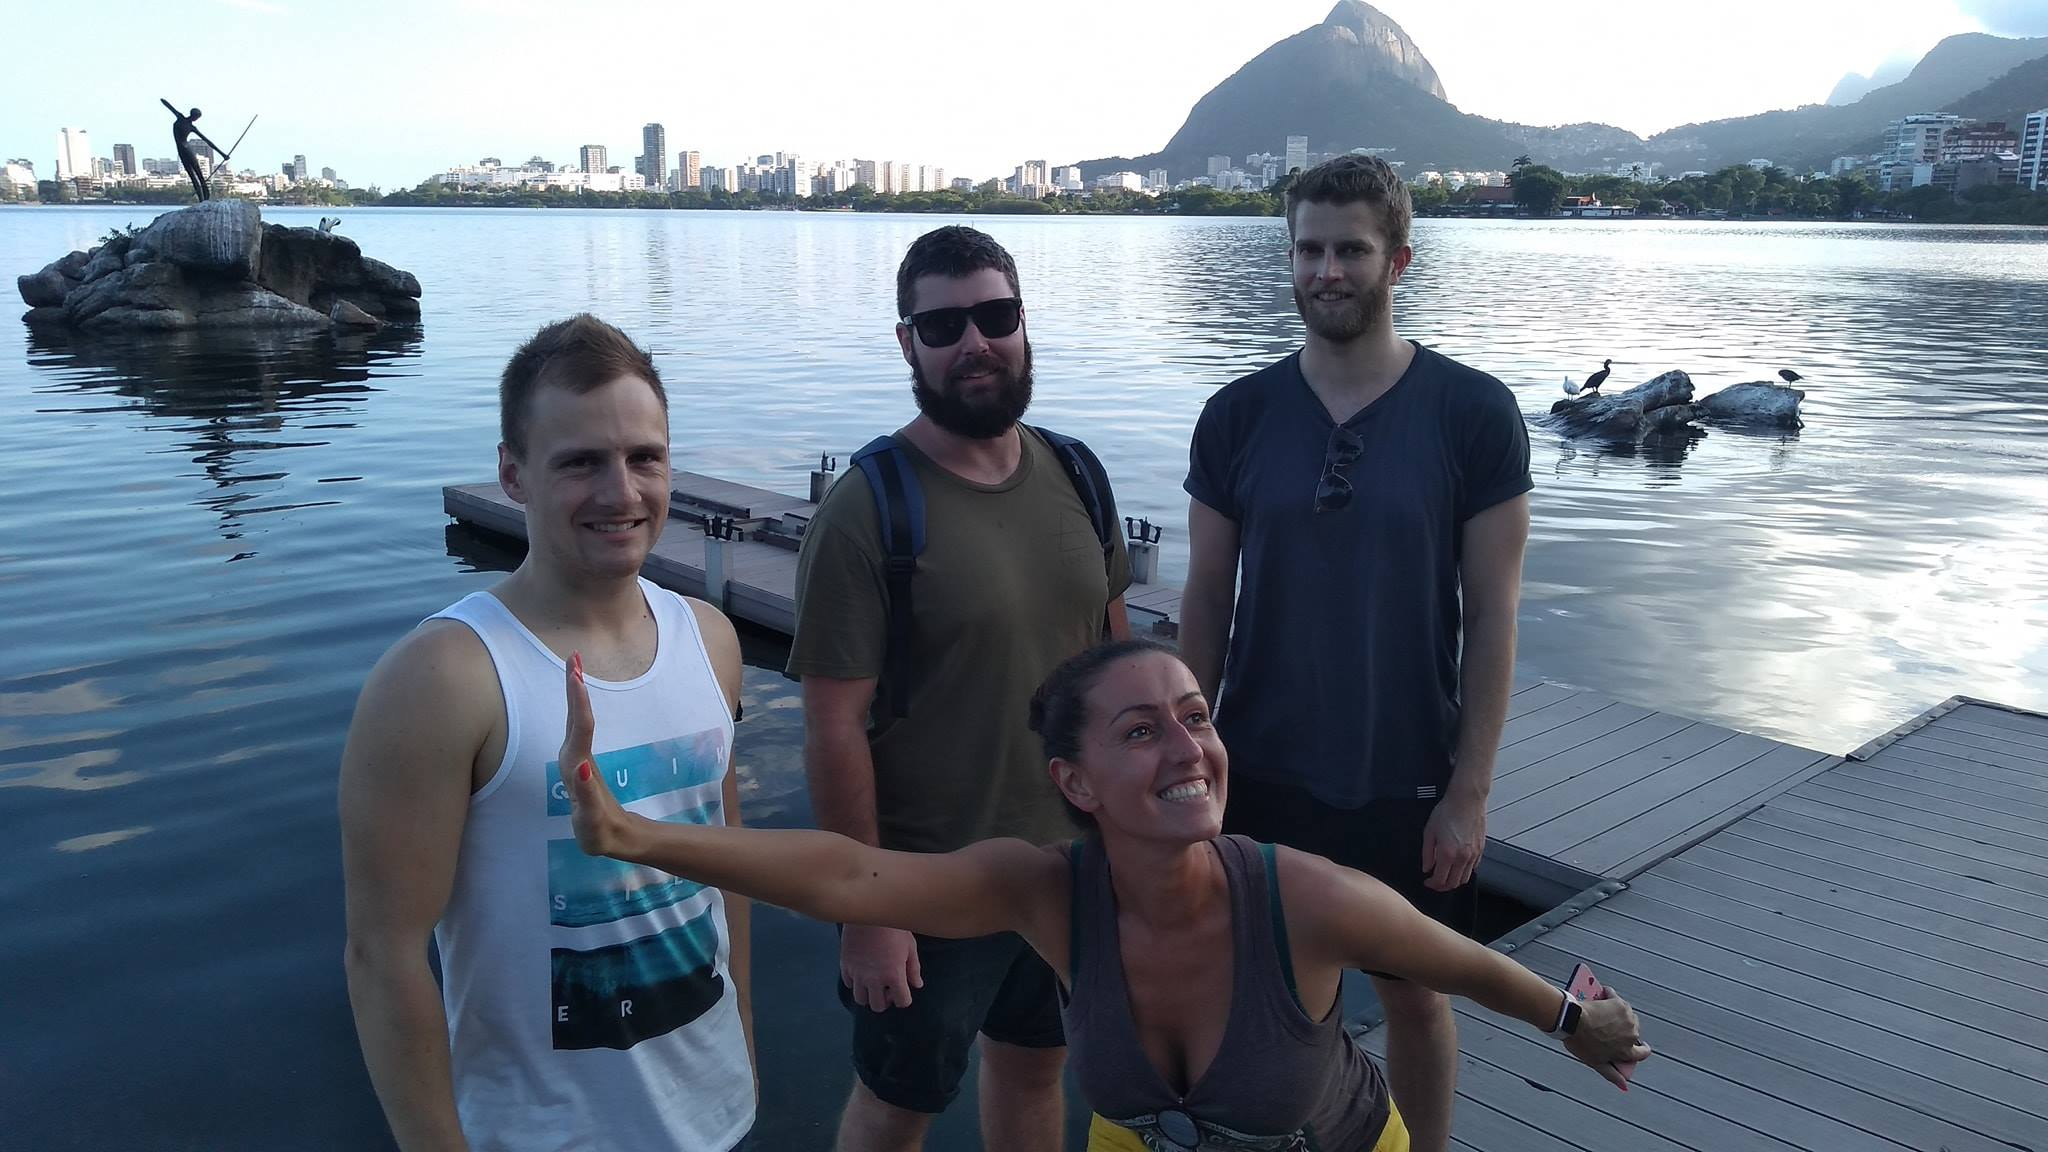 Biking at Rodrigo de Freitas Lagoon. The students were very excited to ride their bikes and see beautiful city views of Rio de Janeiro!